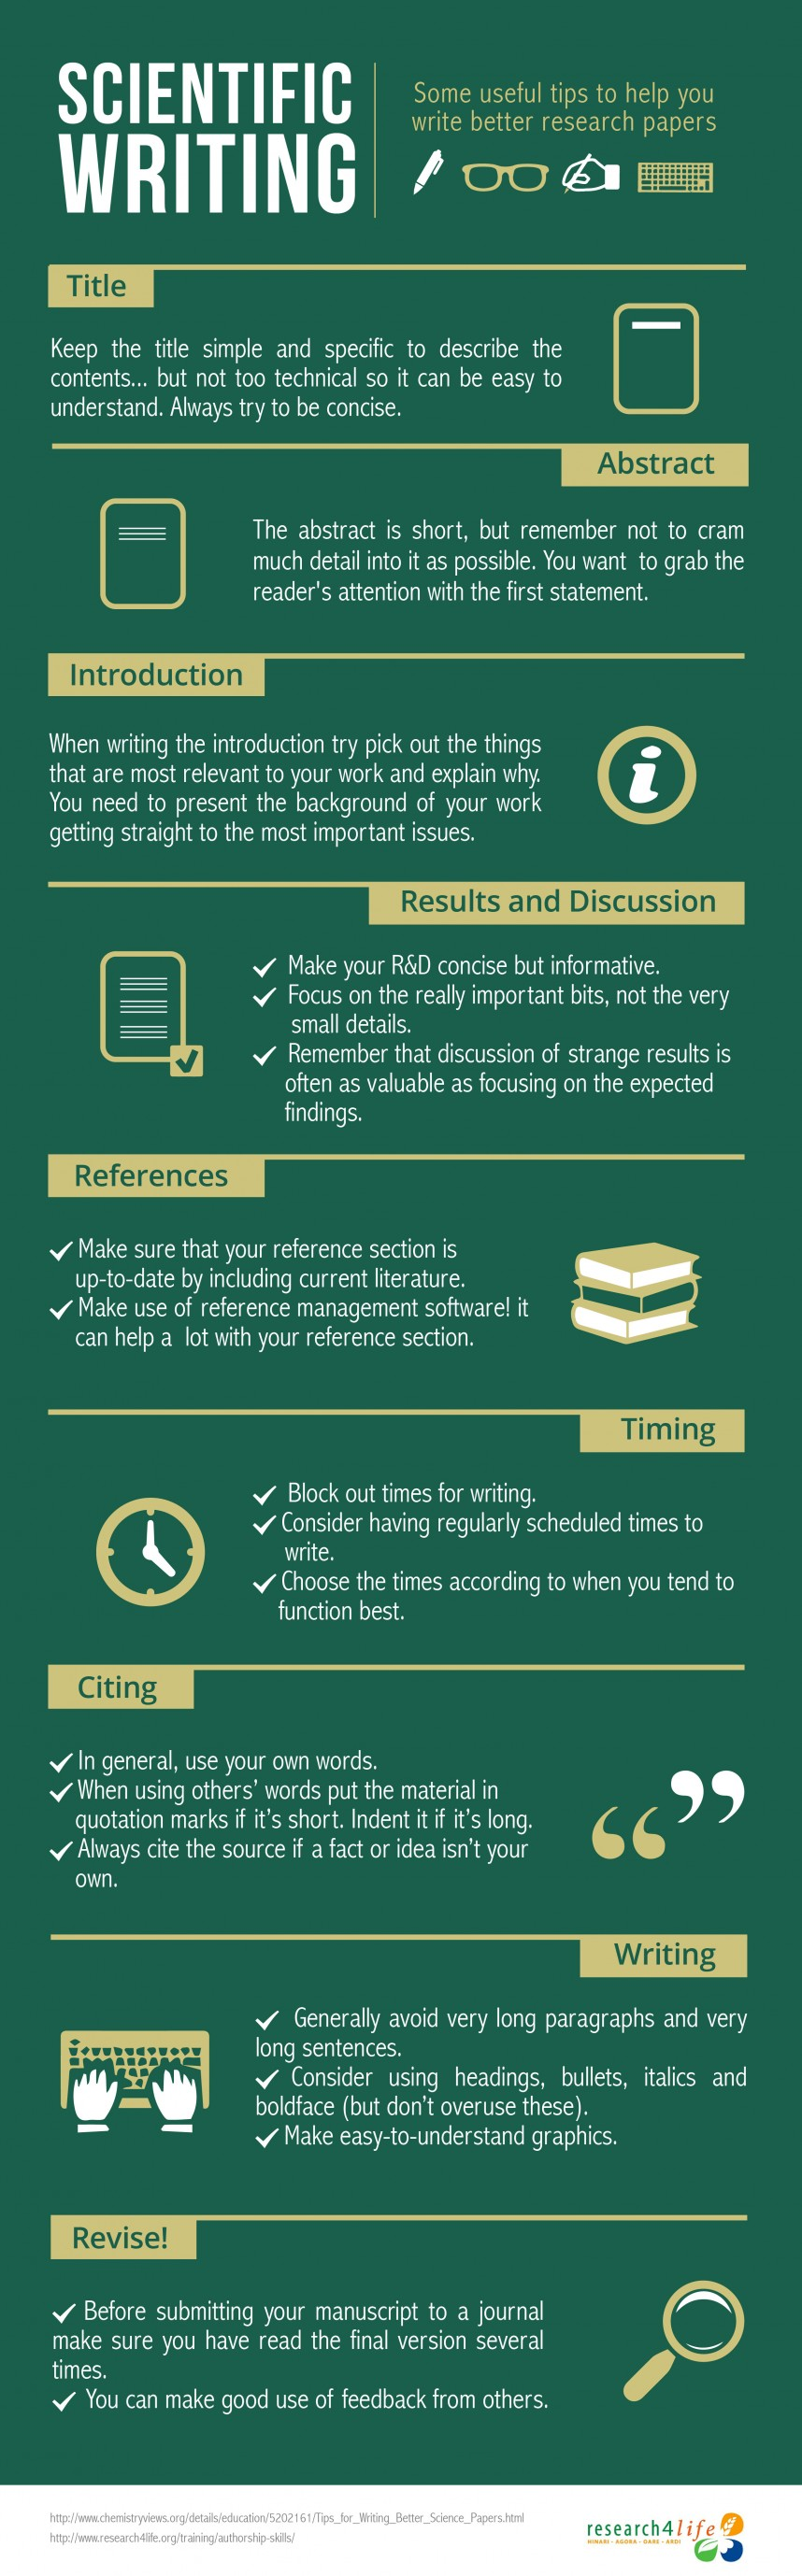 001 Research Paper Best Tips For Writing Scientific Remarkable A Way To Write Fast Persuasive Conclusion